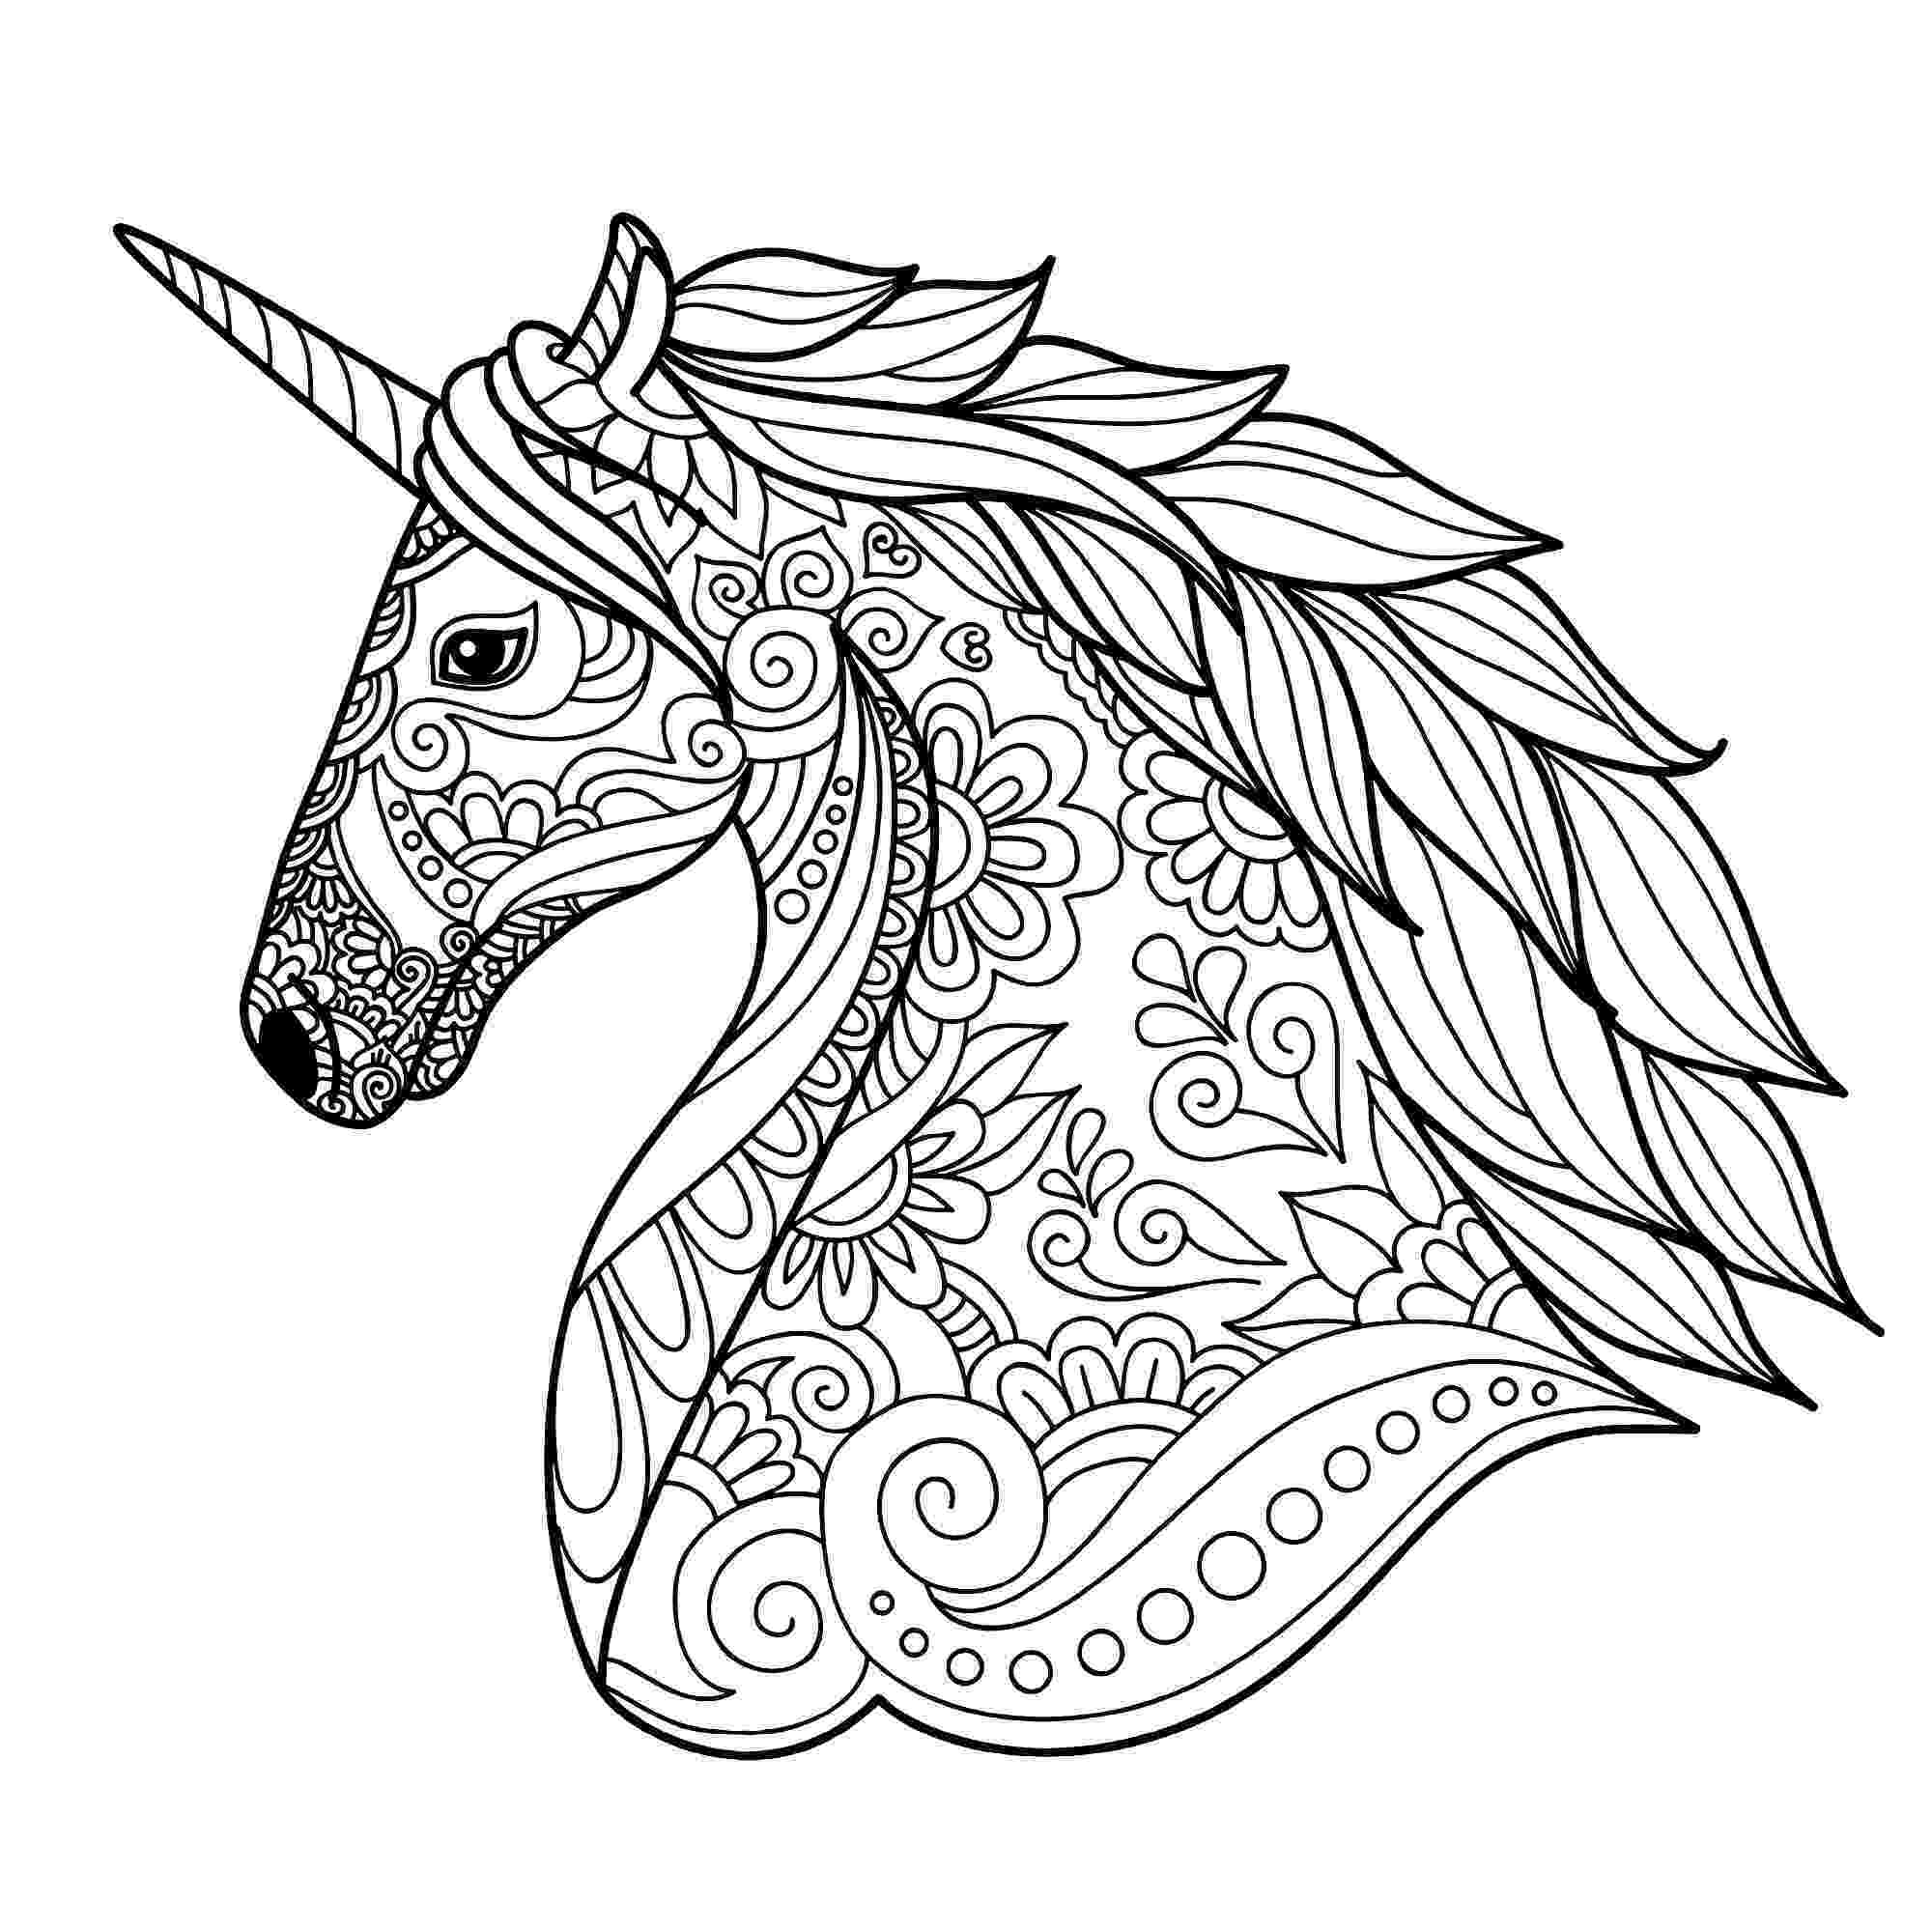 unicorns coloring pages cute winged unicorn coloring page free printable coloring pages unicorns